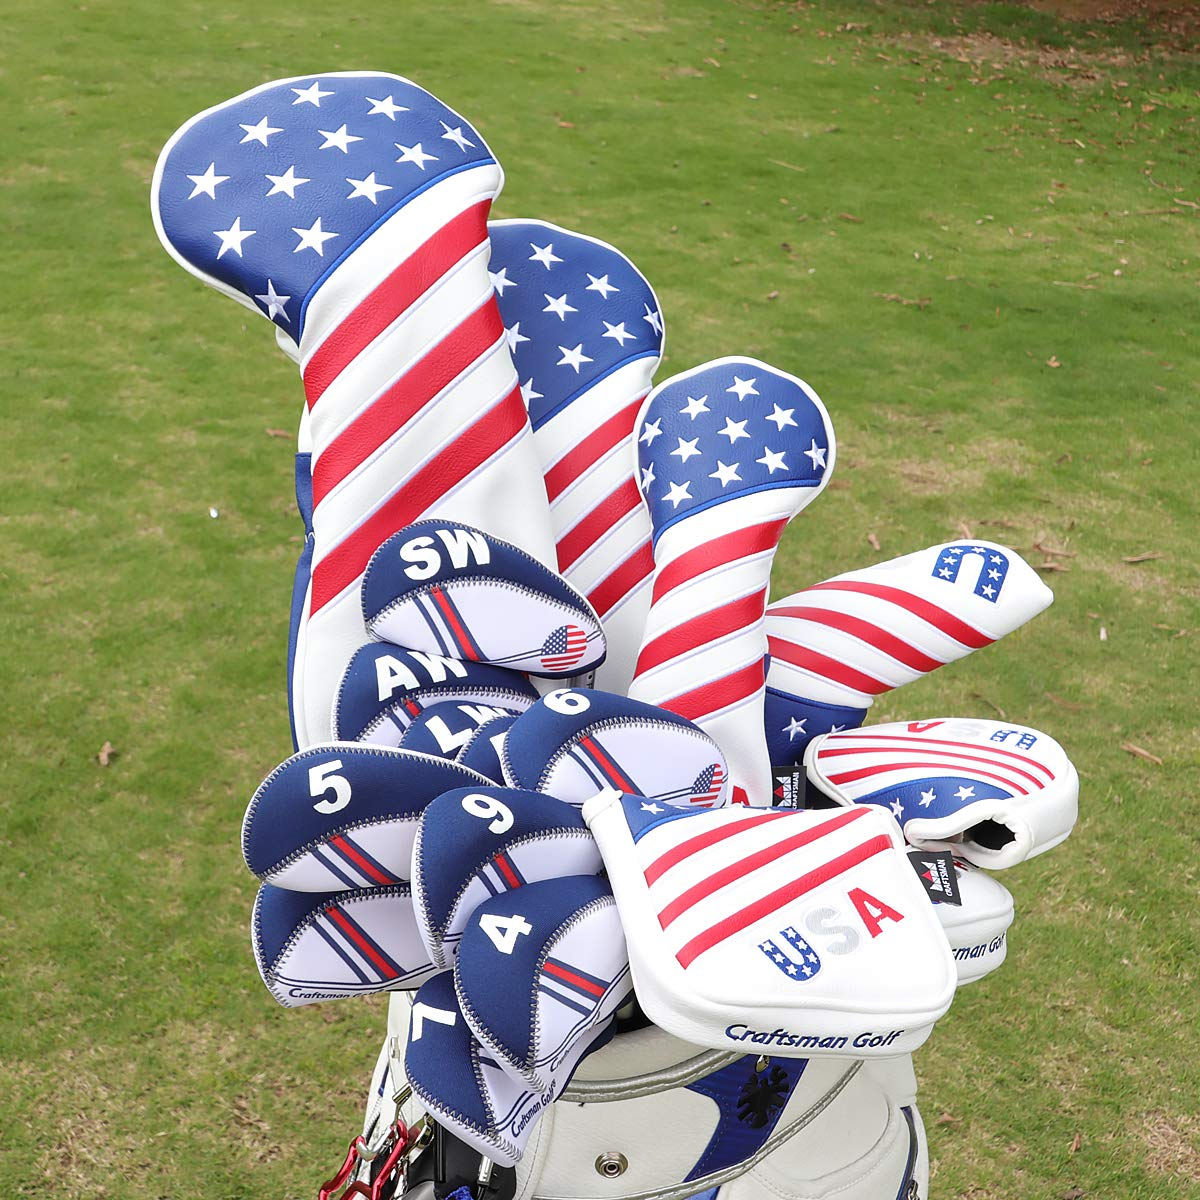 Craftsman Golf Stars and Stripes USA America Square Heel Shafted Mallet Putter Cover Headcover for Taylormade Golf 2017 Spider Tour Putter,Scotty ...